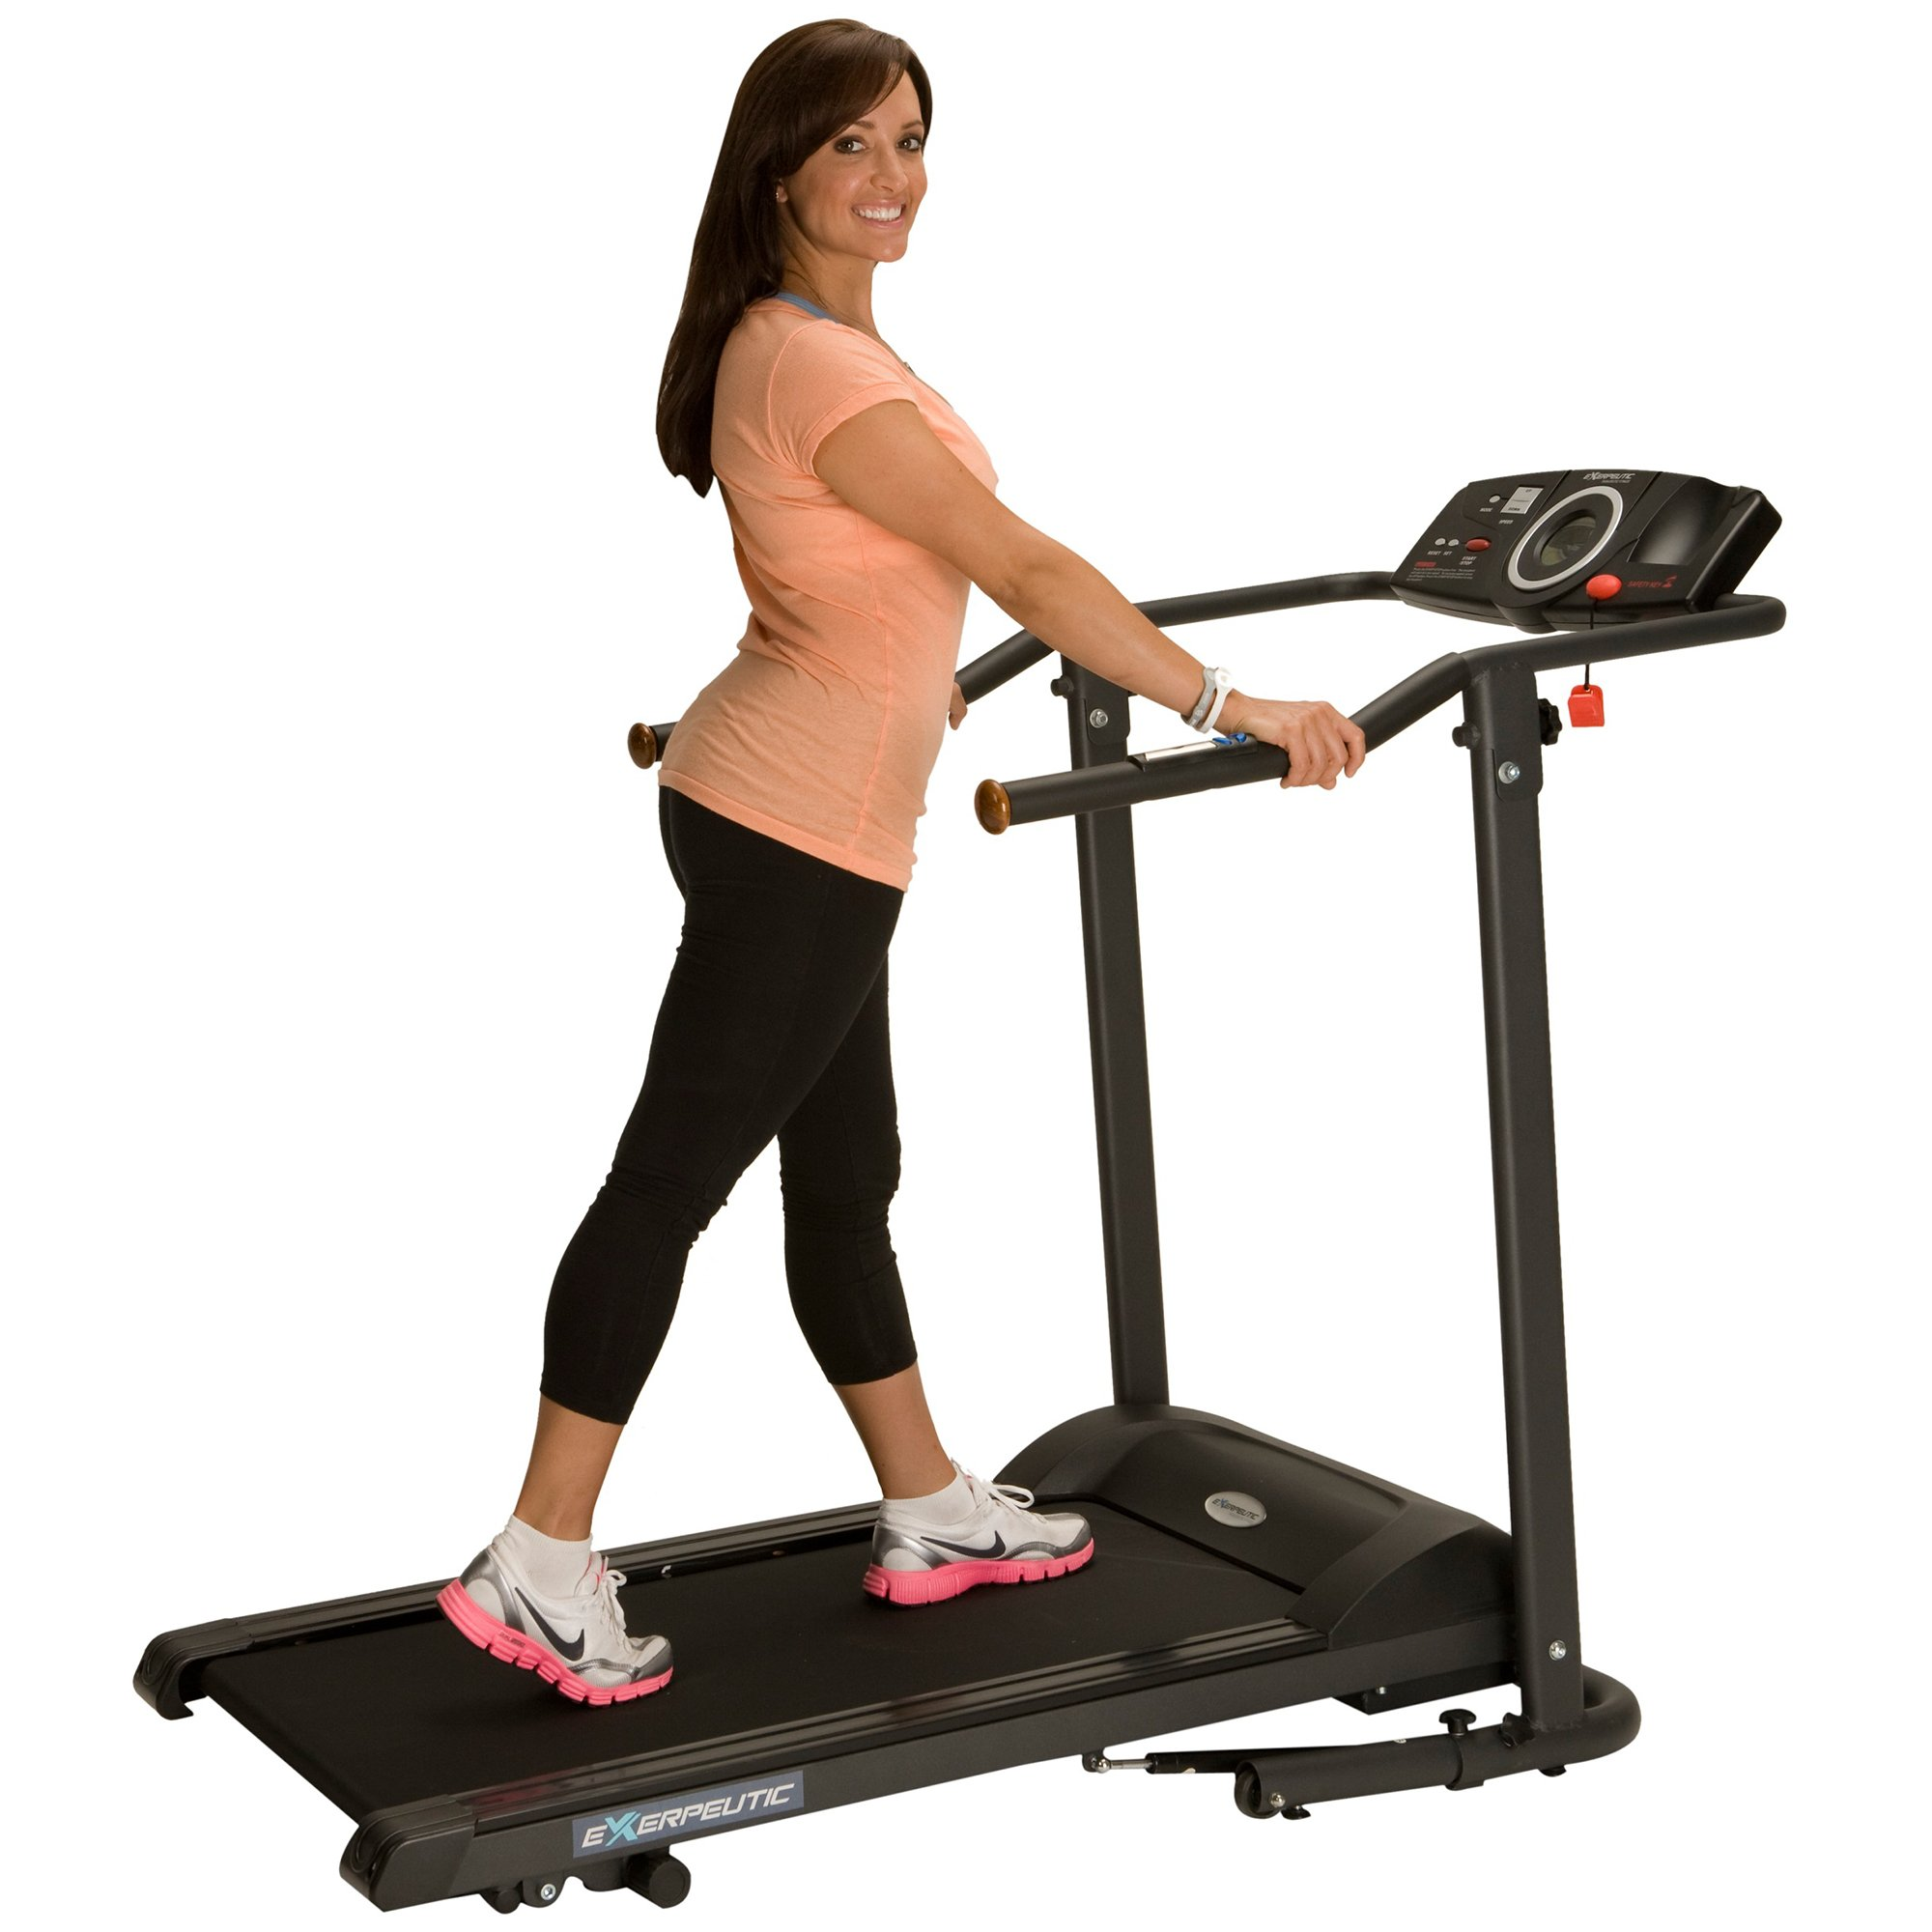 Exerpeutic TF1000 Ultra High Capacity Walk to Fitness Electric Treadmill, 400 lbs by Exerpeutic